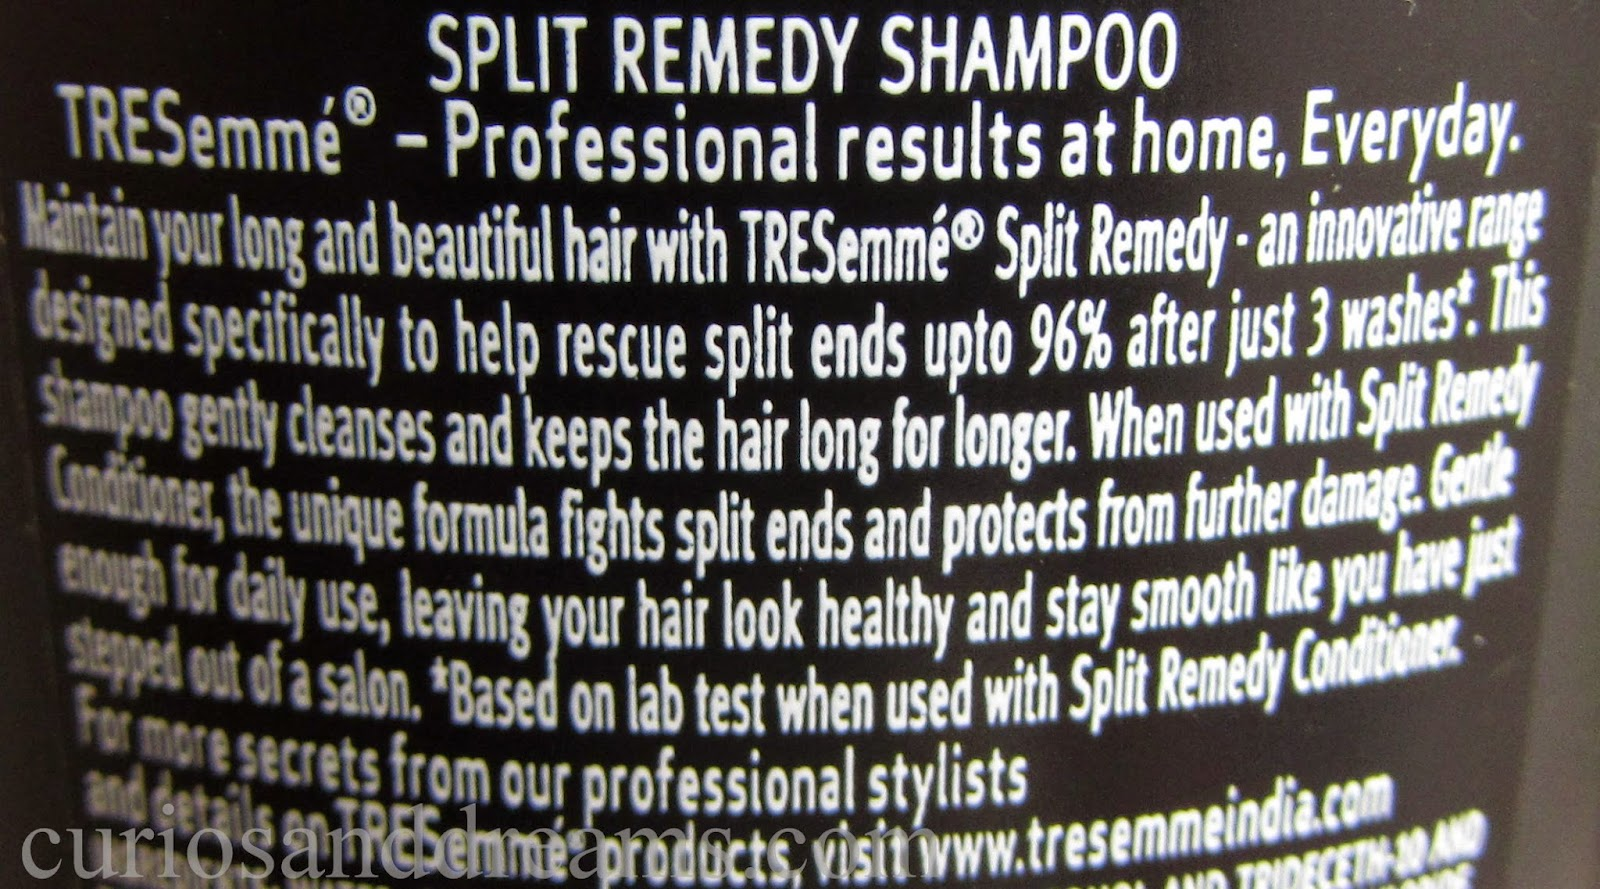 Tresemme Split Remedy Shampoo and Conditioner Review, Tresemme Split Remedy Shampoo review, Tresemme Split Remedy conditoner review